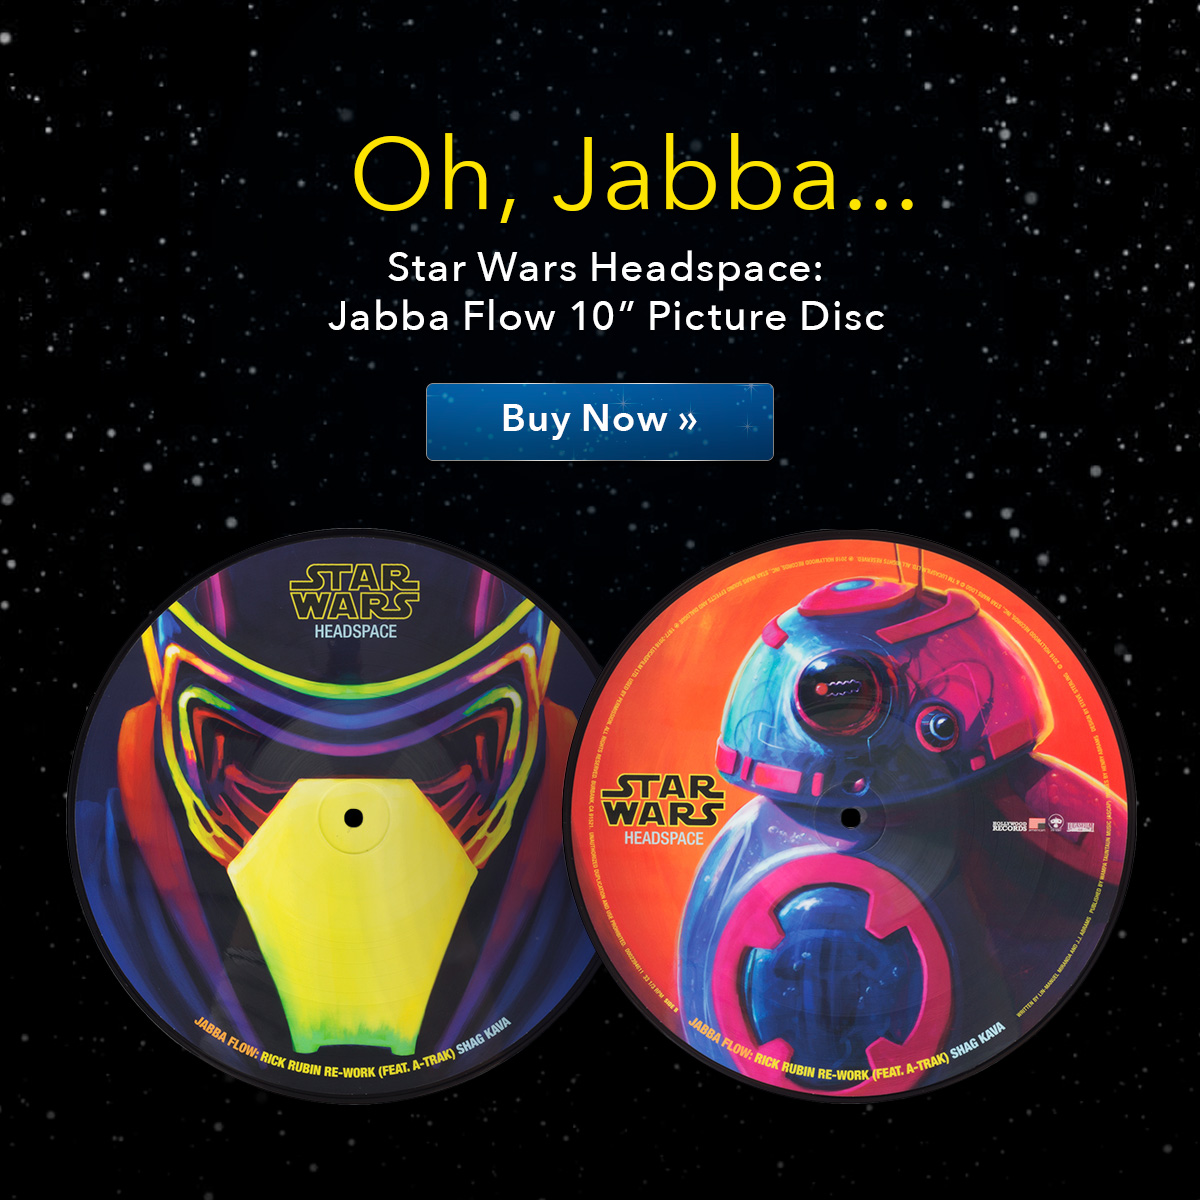 Star Wars Headspace: Jabba Flow Picture Disc